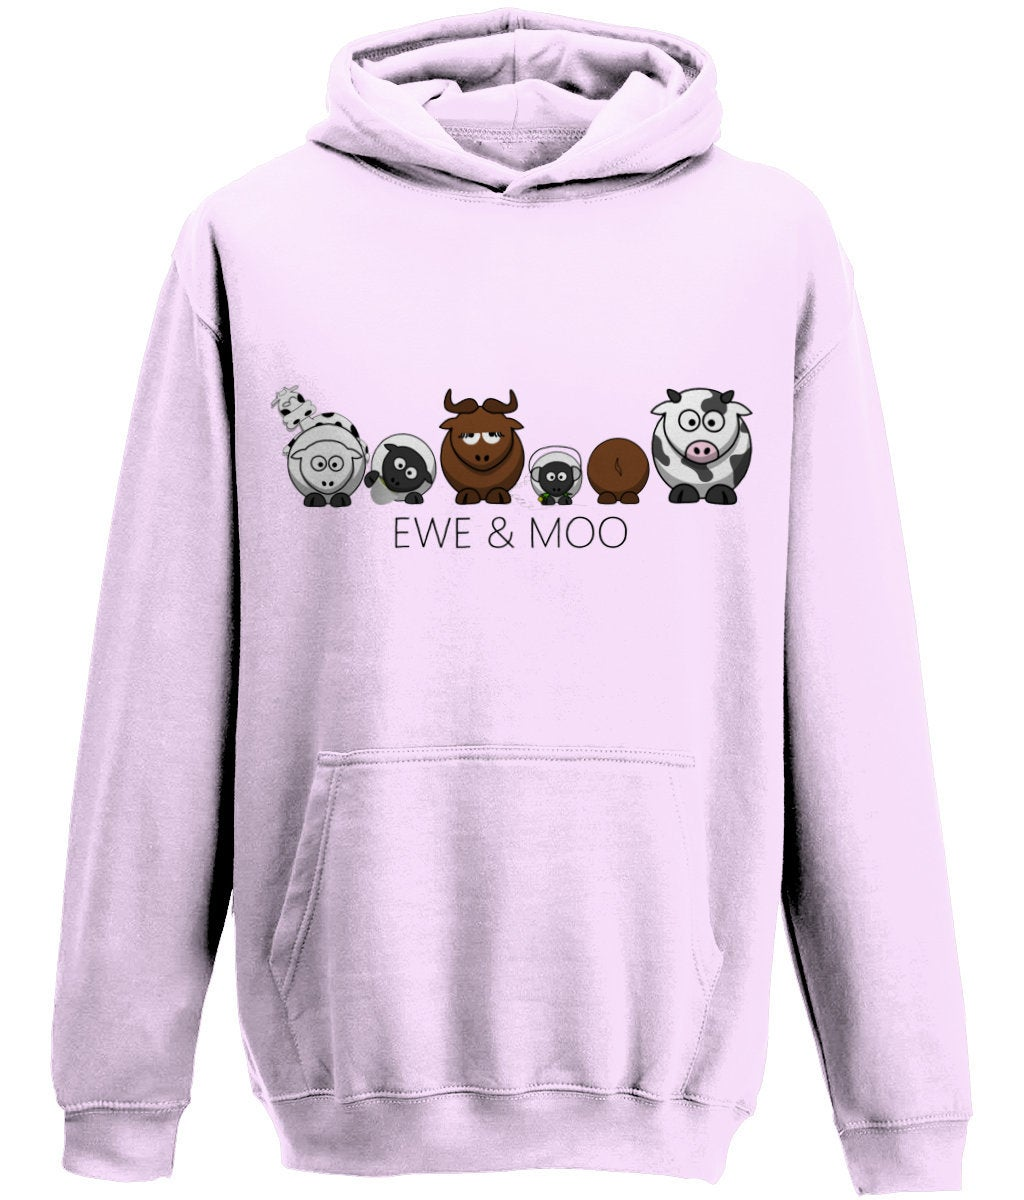 "Personalised Kids Hoodie ""EWE&MOO"", Hoodie, Jumper, Cardigan, Cow Hoodie, Animal Hoodie, Sheep Hoodie, Cotton Hoodie  #gifts #lakedistrict #london #giftsforher #giftideas #Handmadefurniture #Phonecases #Clothing #sheep #Cow"